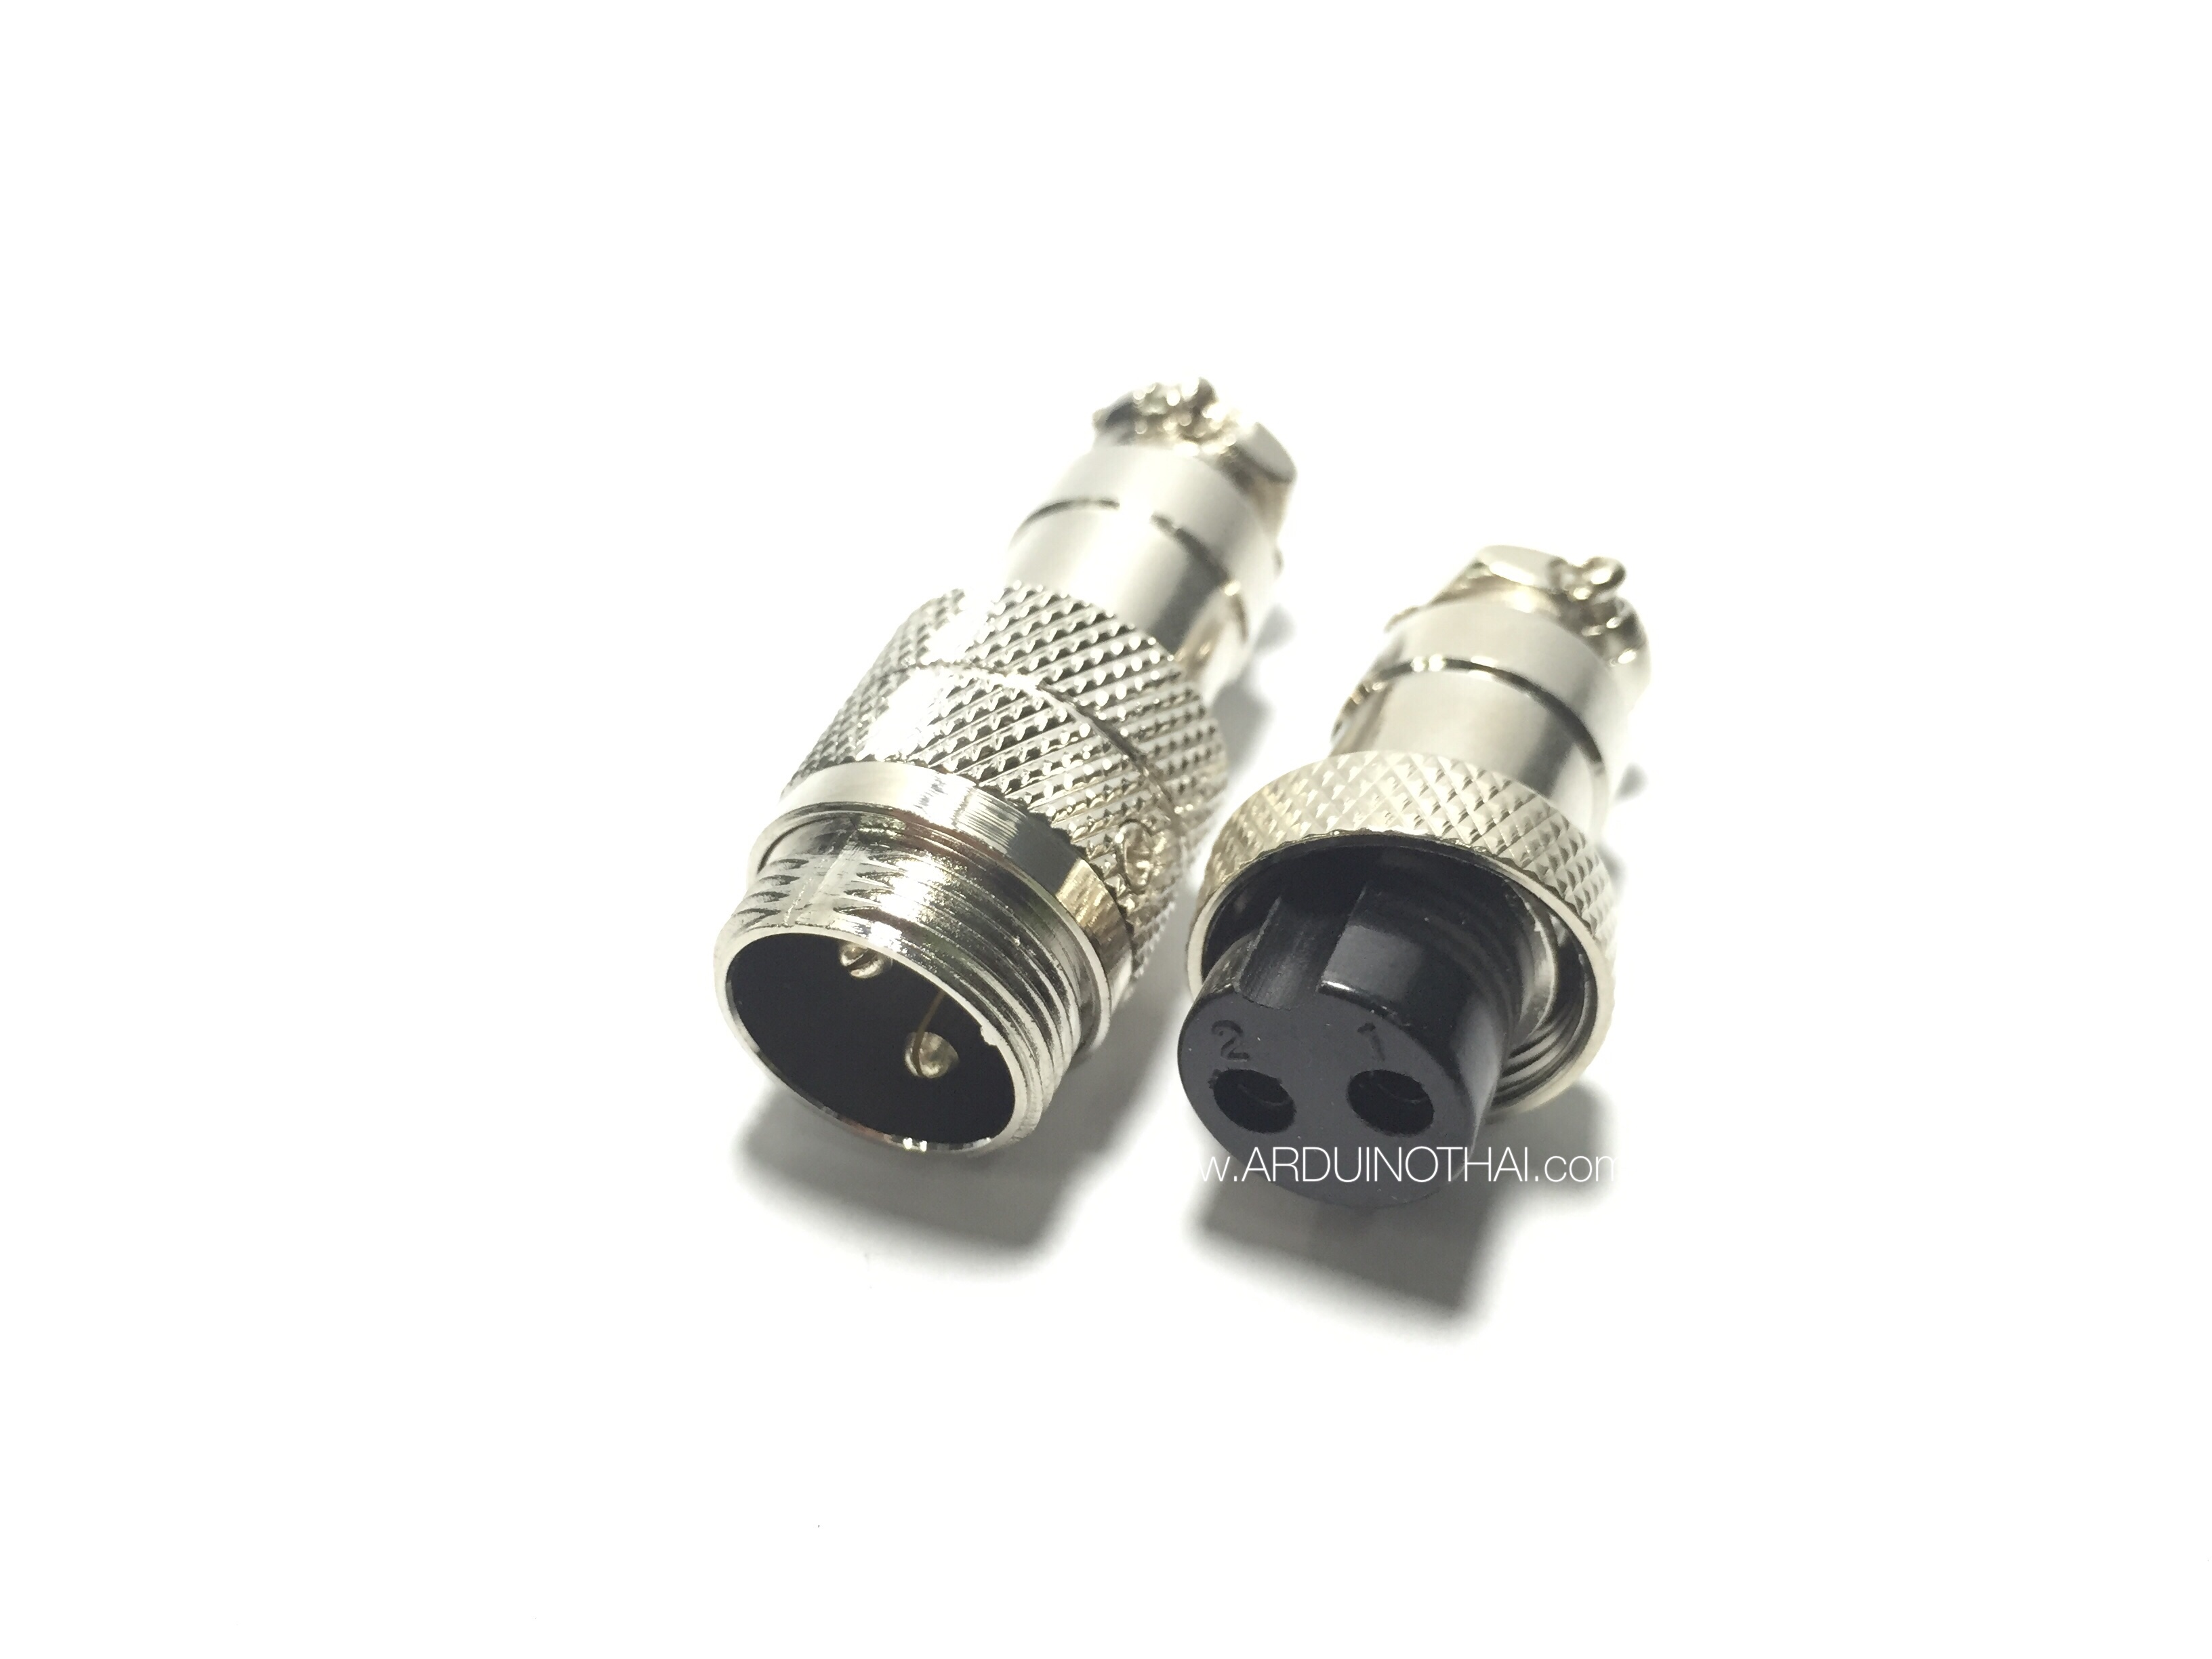 Aviation plug GX16-2 core